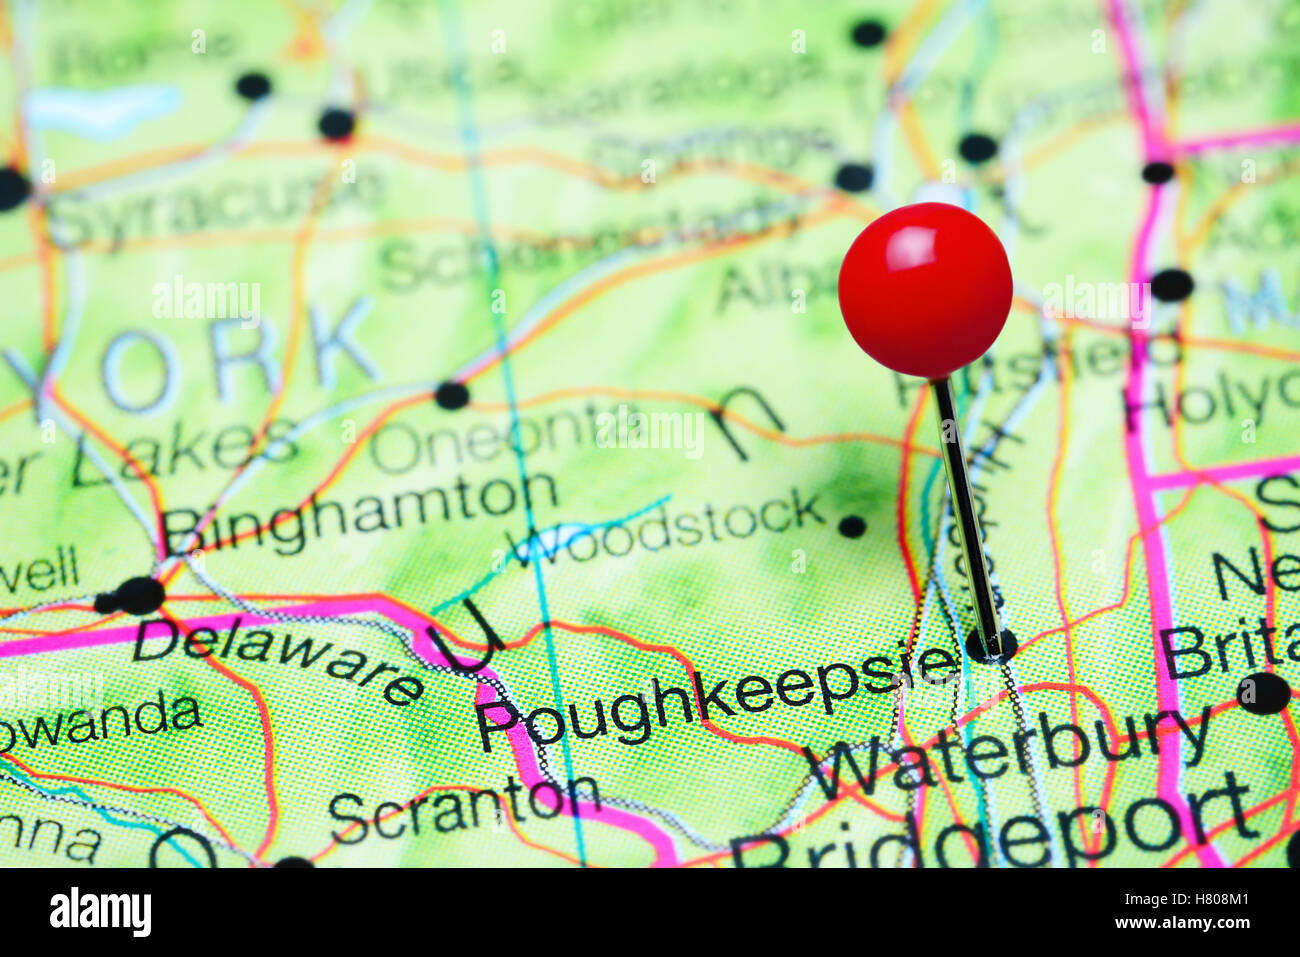 Poughkeepsie pinned on a map of New York state USA Stock Photo